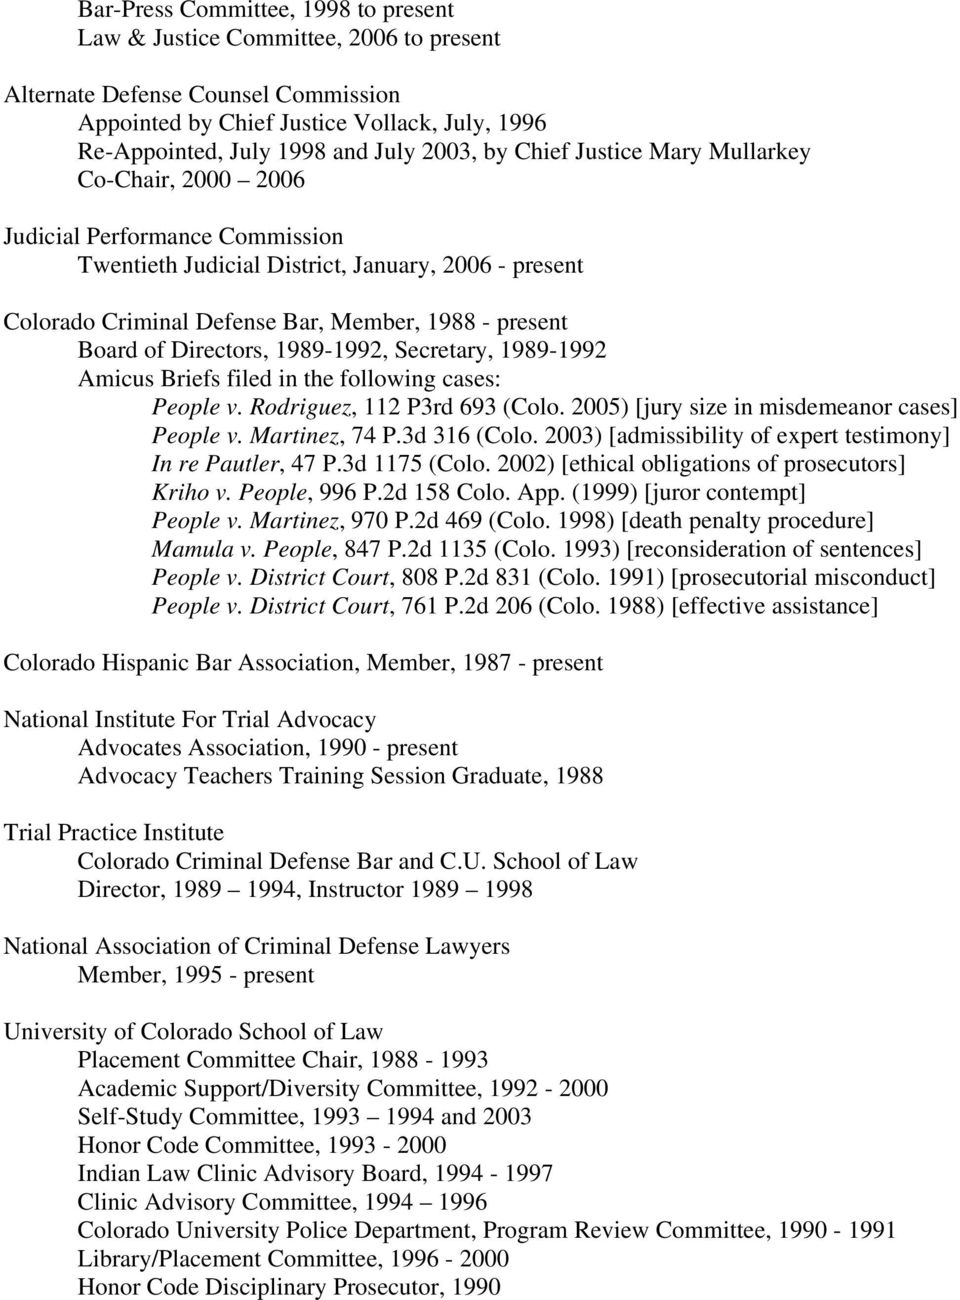 Board of Directors, 1989-1992, Secretary, 1989-1992 Amicus Briefs filed in the following cases: People v. Rodriguez, 112 P3rd 693 (Colo. 2005) [jury size in misdemeanor cases] People v.